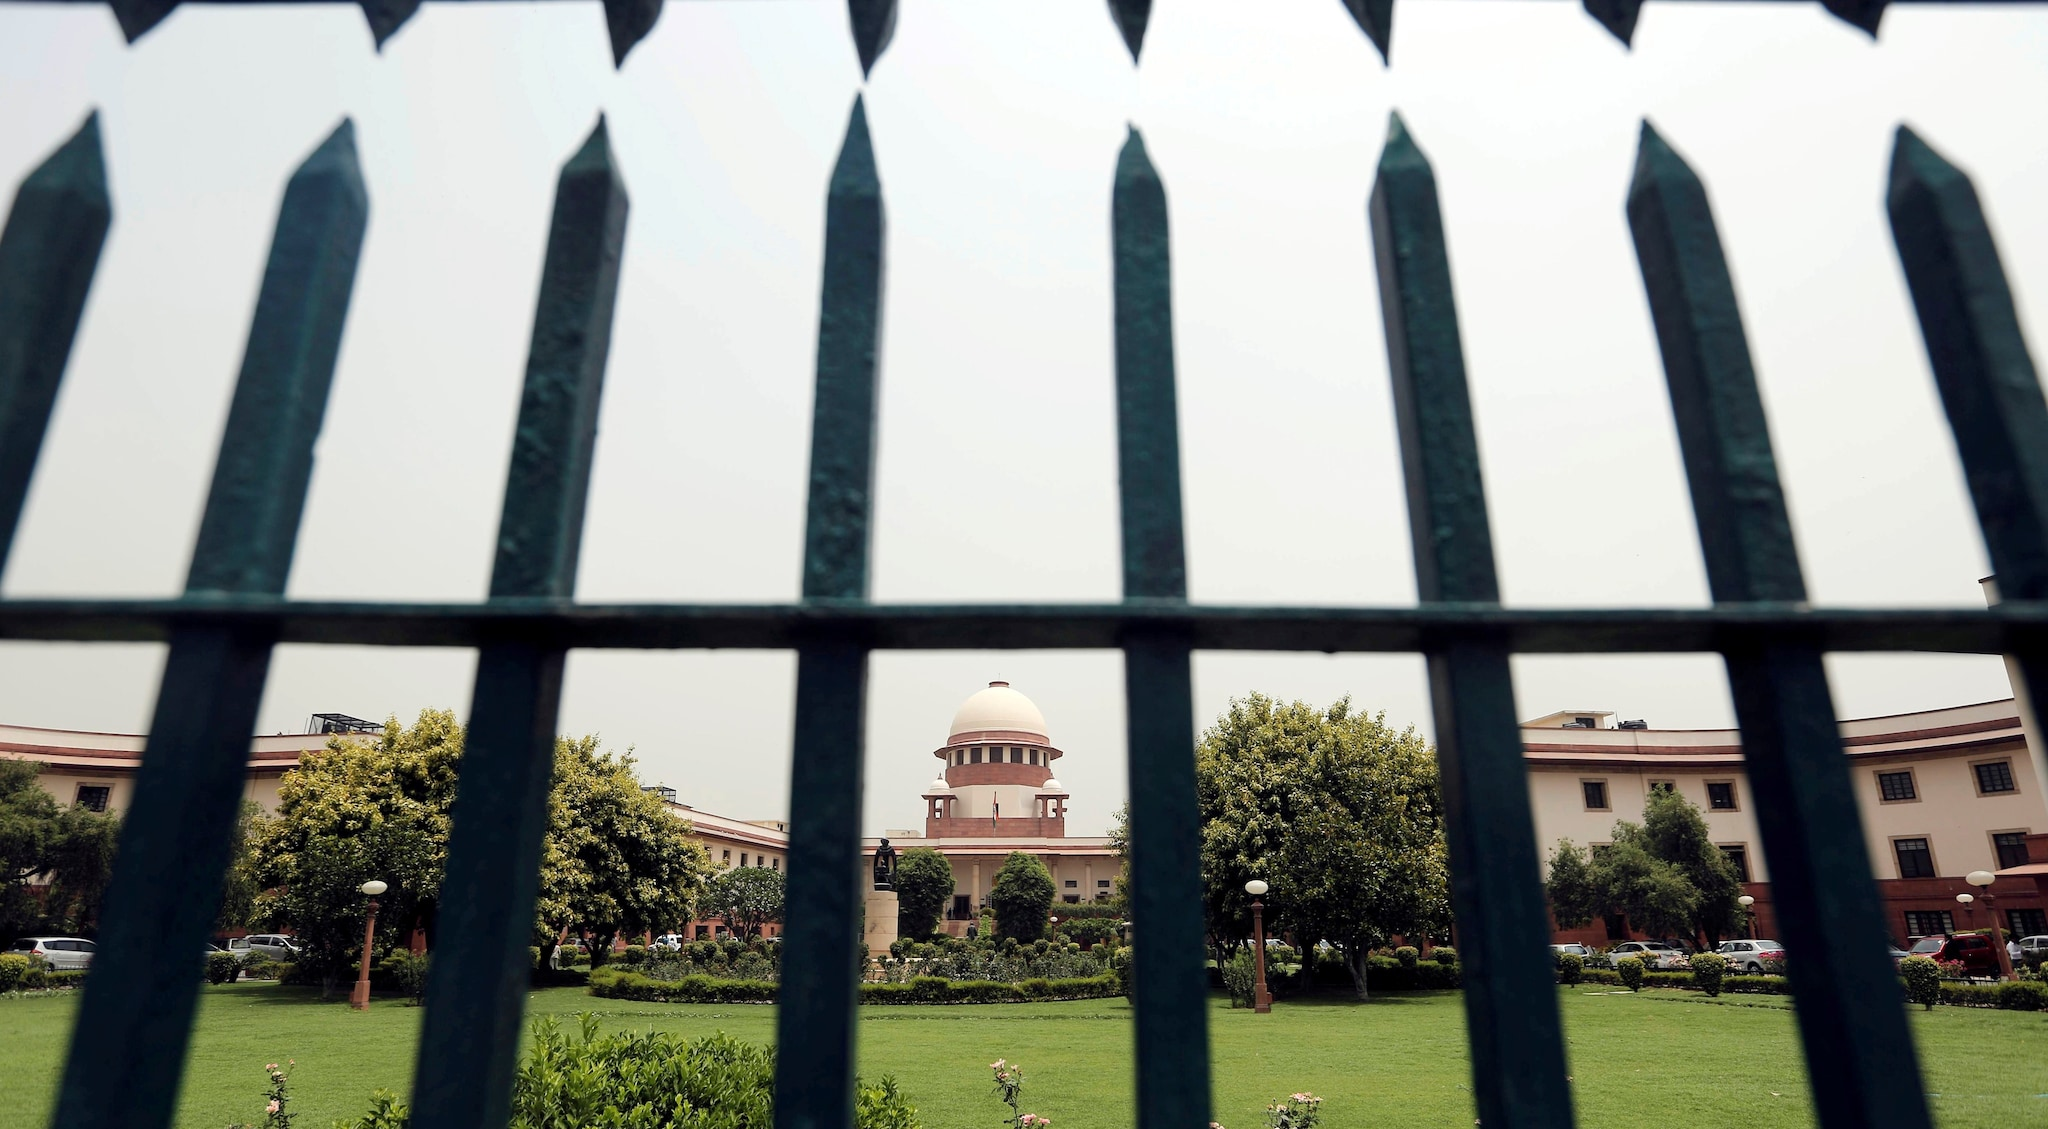 7. Insolvency And Bankruptcy Code Amended: The government has notified the Insolvency and Bankruptcy Code (Amendment) Act, 2019, under which a deadline of 330 days has been set for completion of the corporate insolvency resolution process (CIRP), including litigation and other judicial processes. The new law aims to provide greater clarity on the permissibility of corporate restructuring schemes, rights and duties of authorised representatives of voters, manner of distribution of amounts among financial and operational creditors. (Image: Reuters)